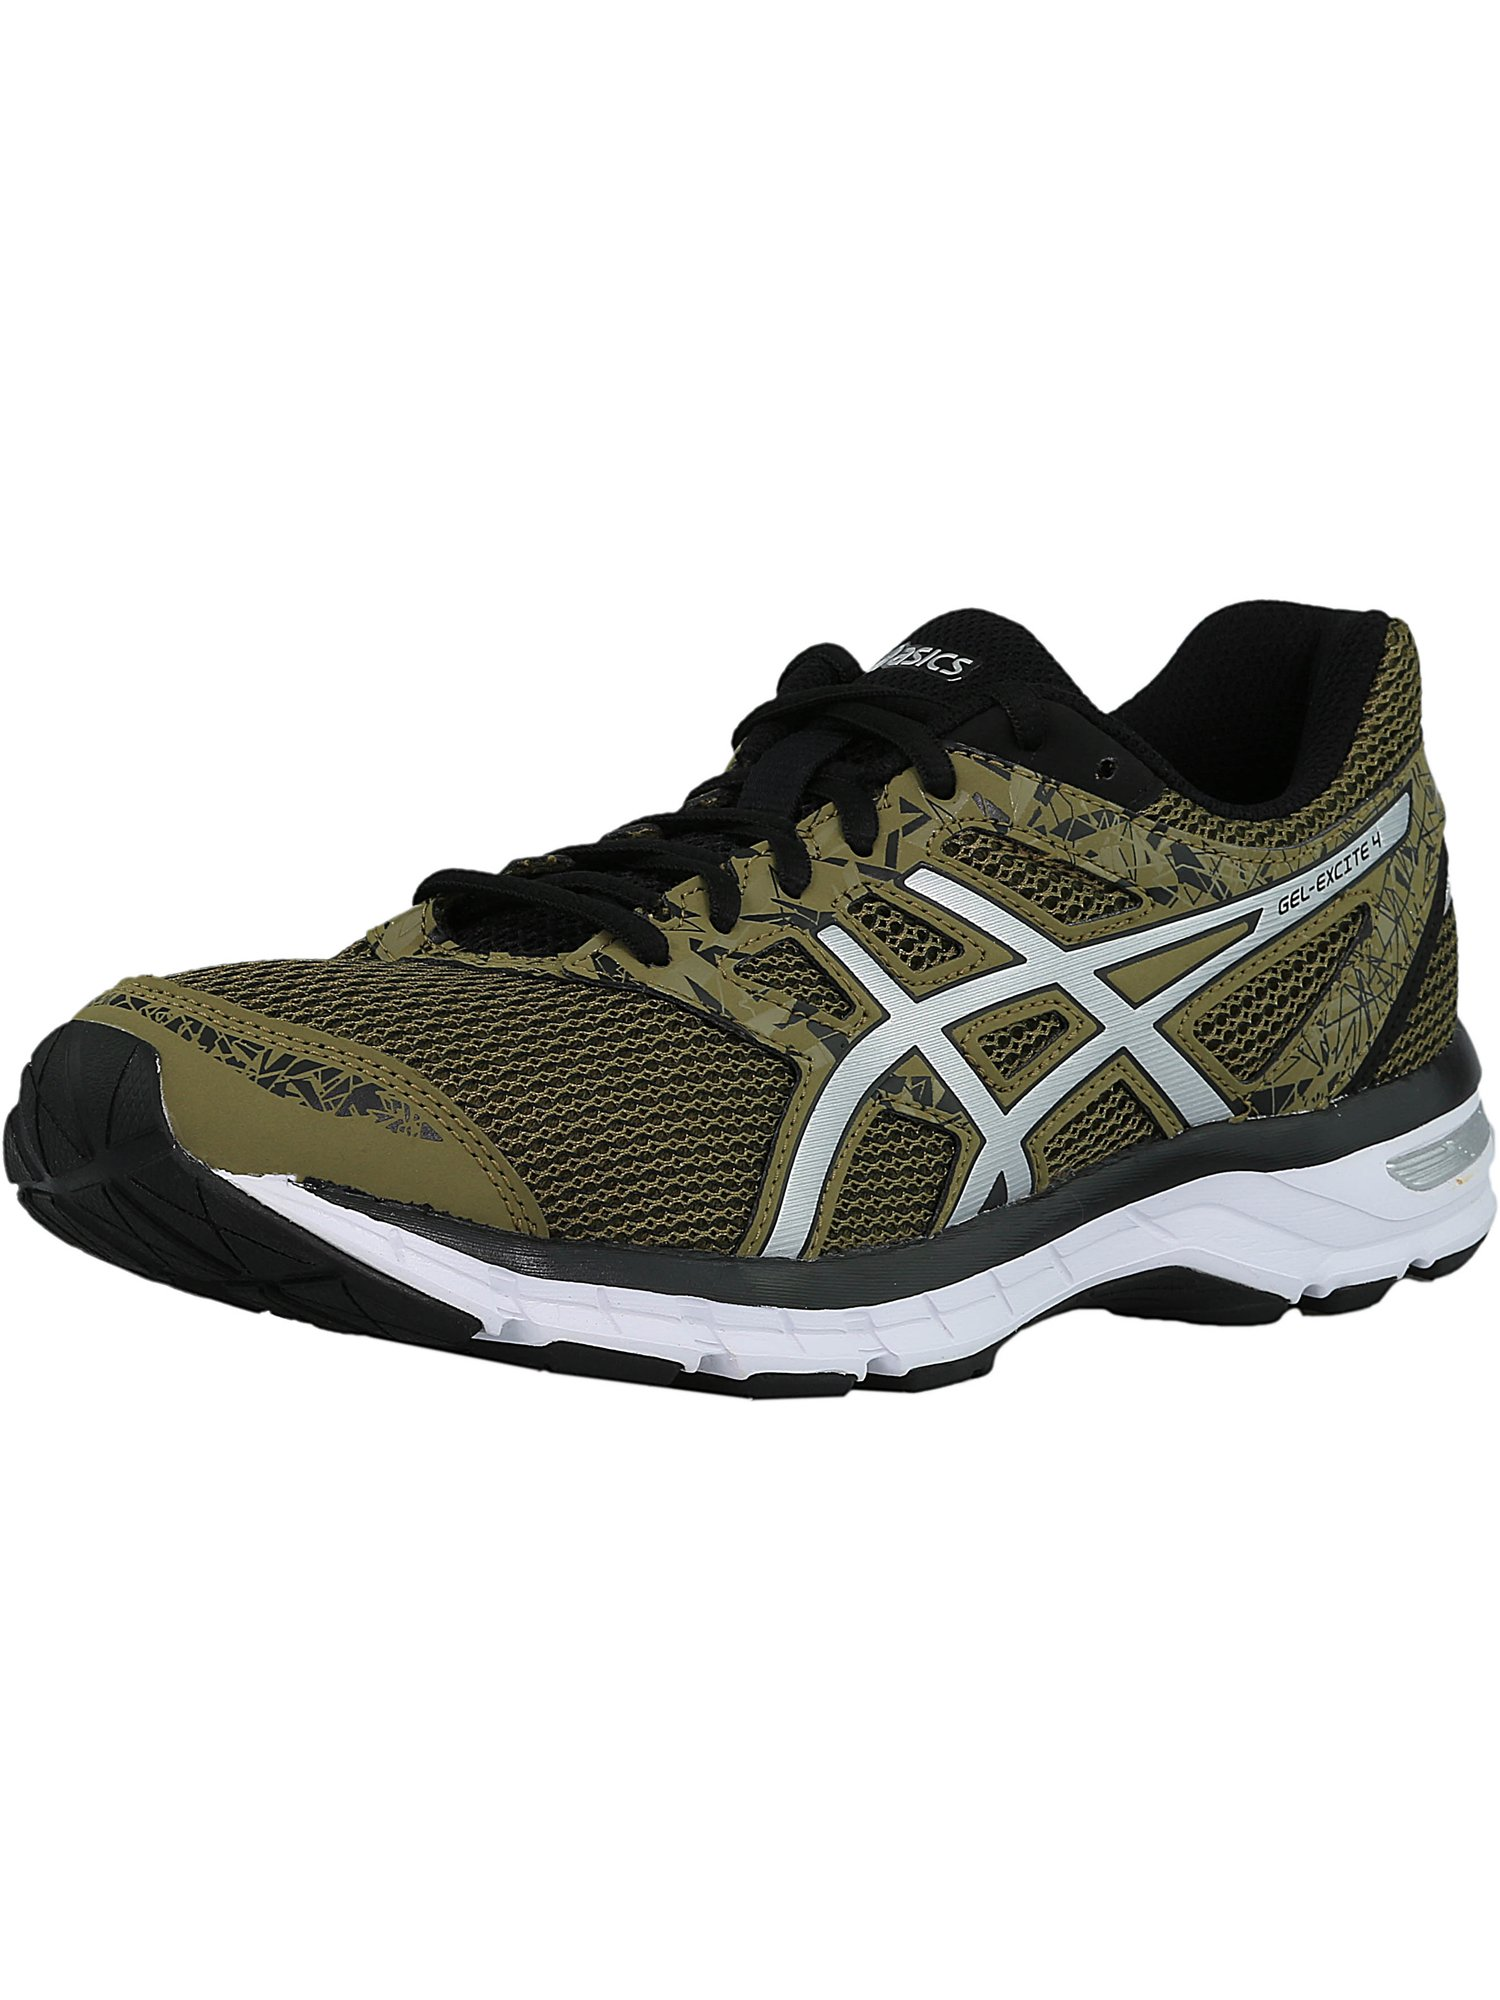 Asics Men's Gel-Excite 4 Martini Olive / Silver Black Ankle-High Running Shoe - 6M